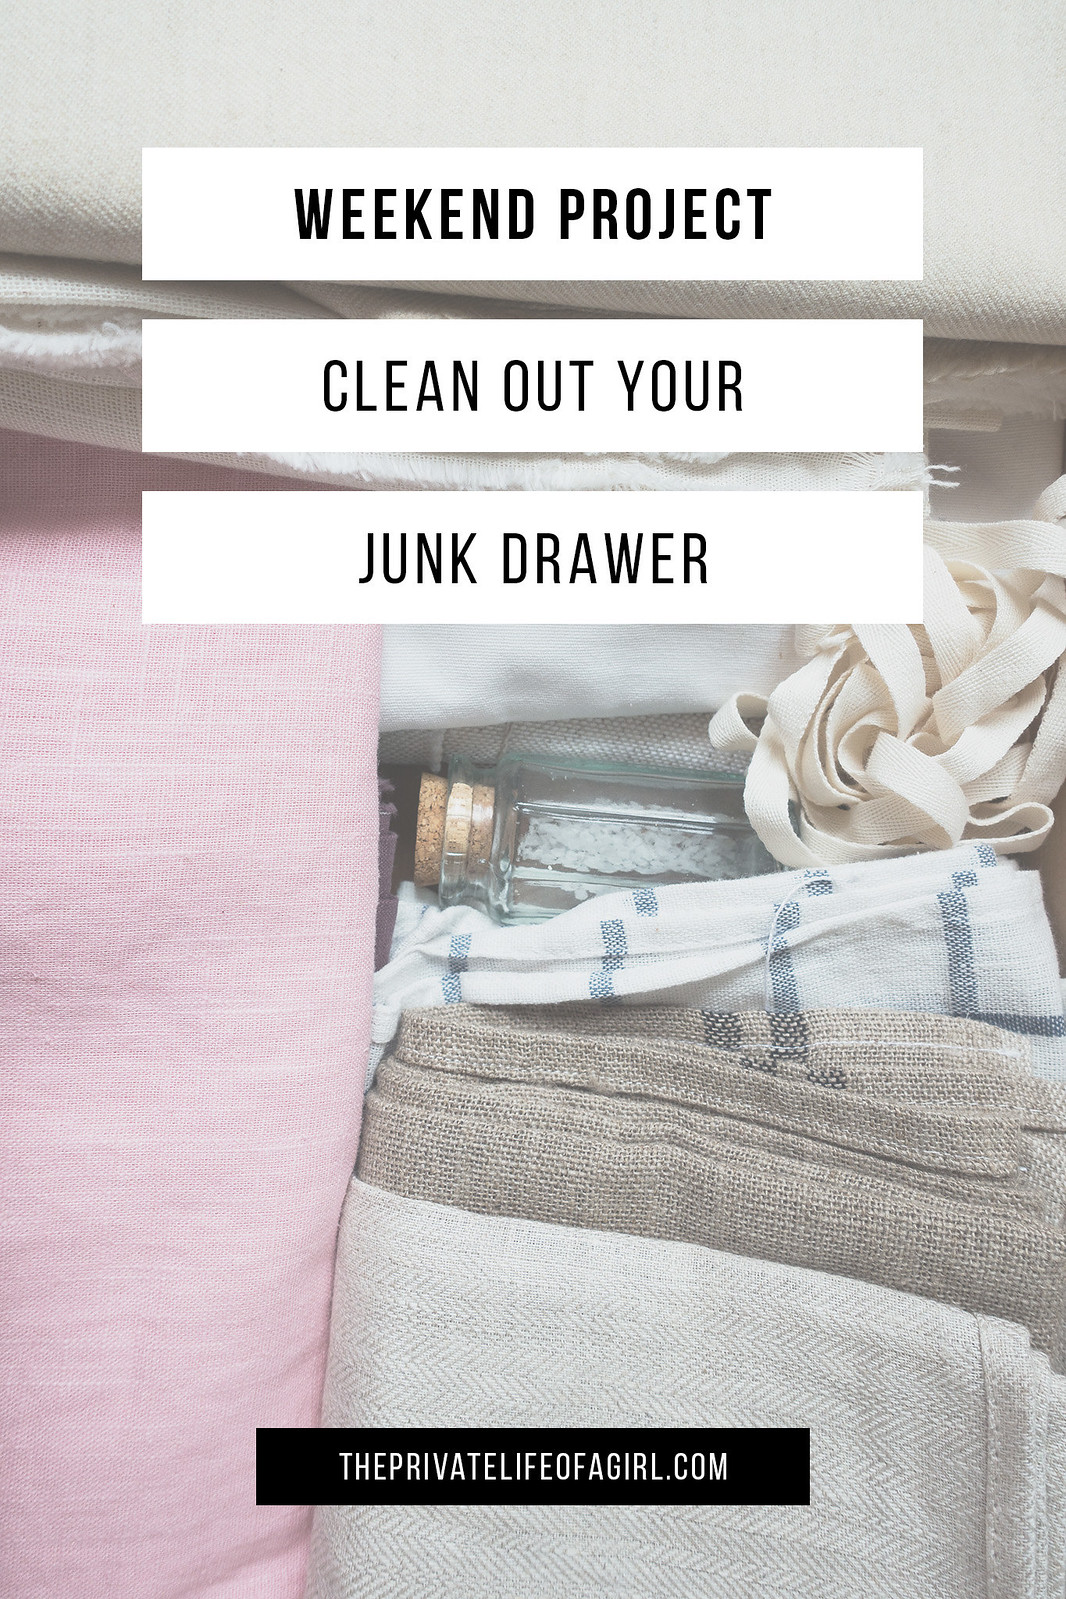 Weekend Project: Clean Out Your Junk Drawer For Good